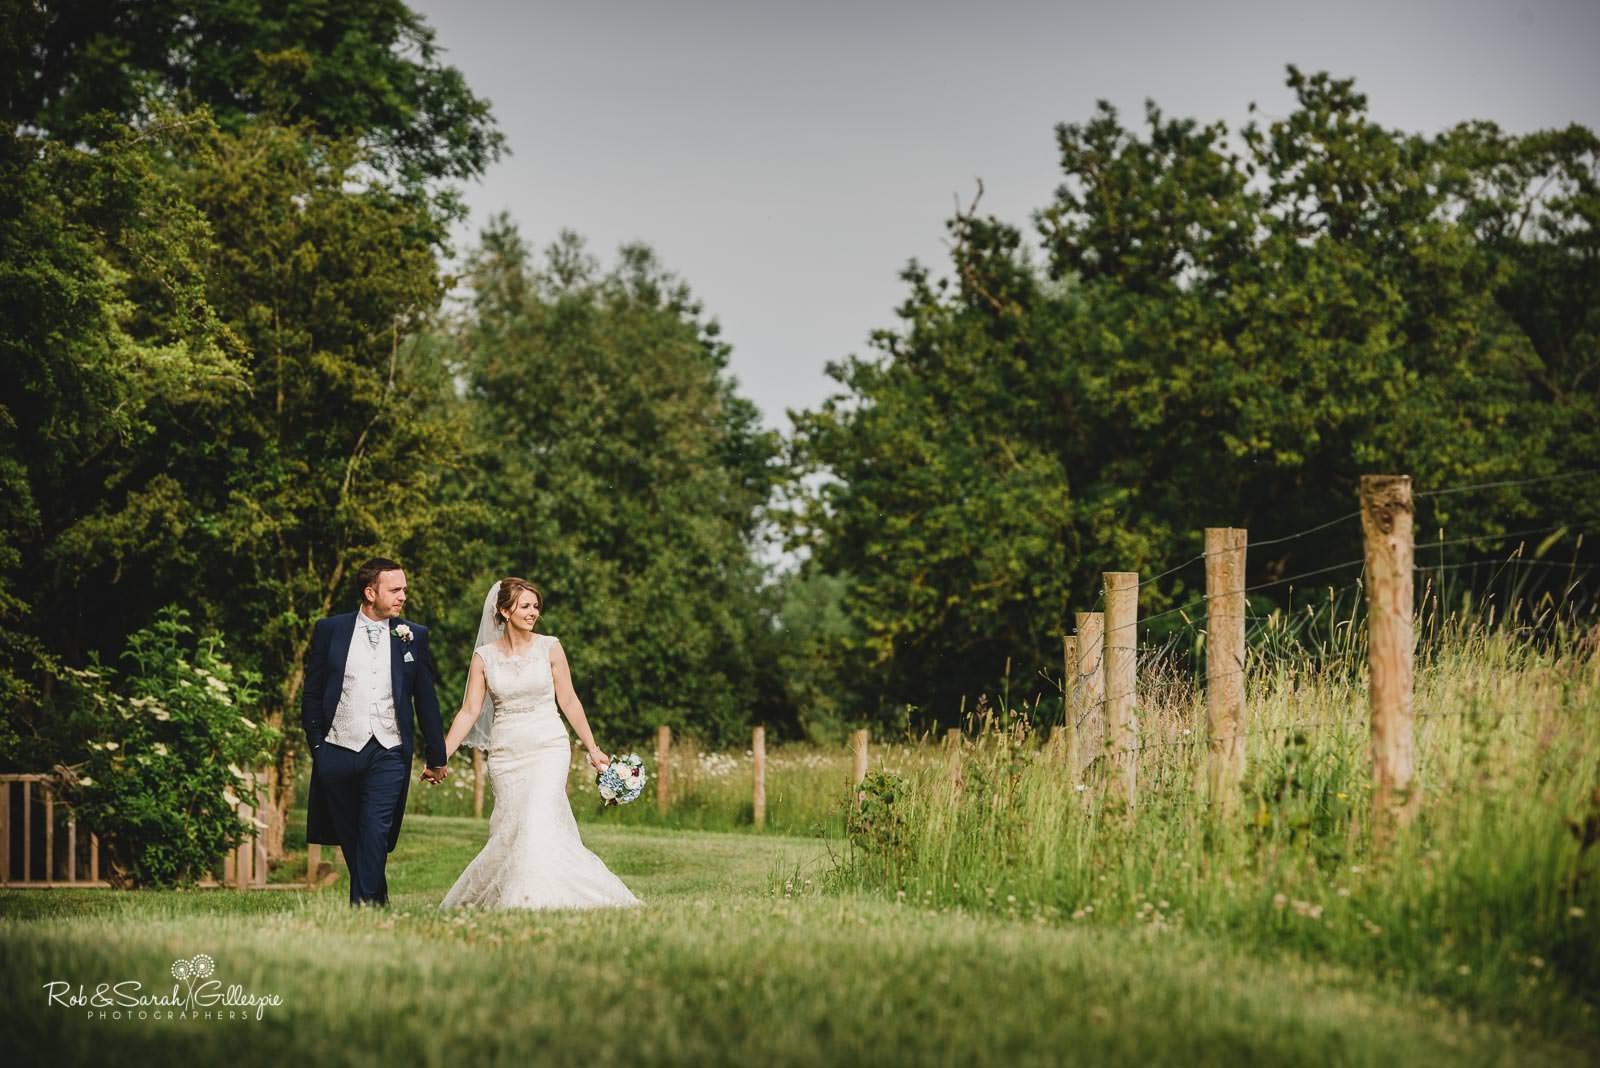 Bride and groom walk through grounds at Swallows Nest Barn